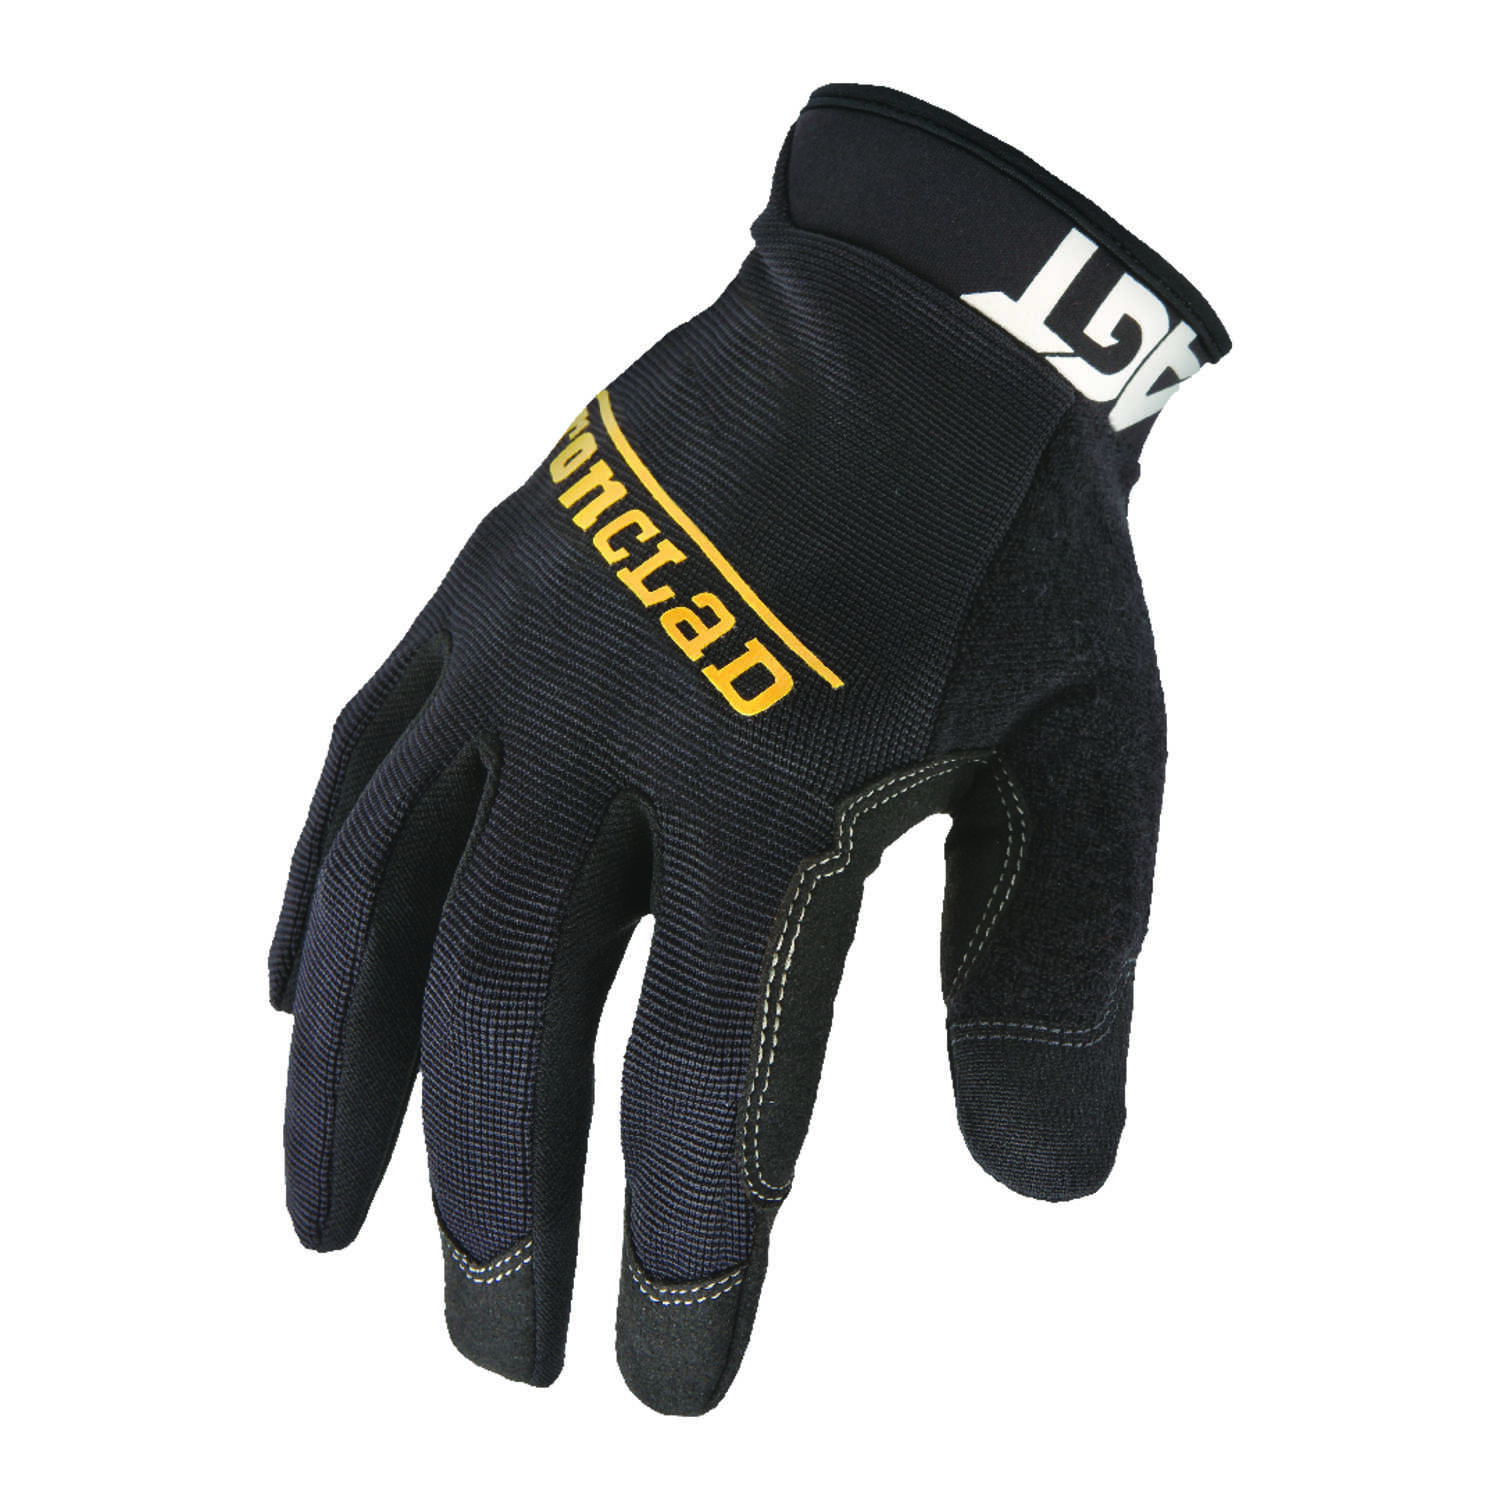 Ironclad  Men's  Synthetic Leather  Work  Gloves  Black  M  1 pair